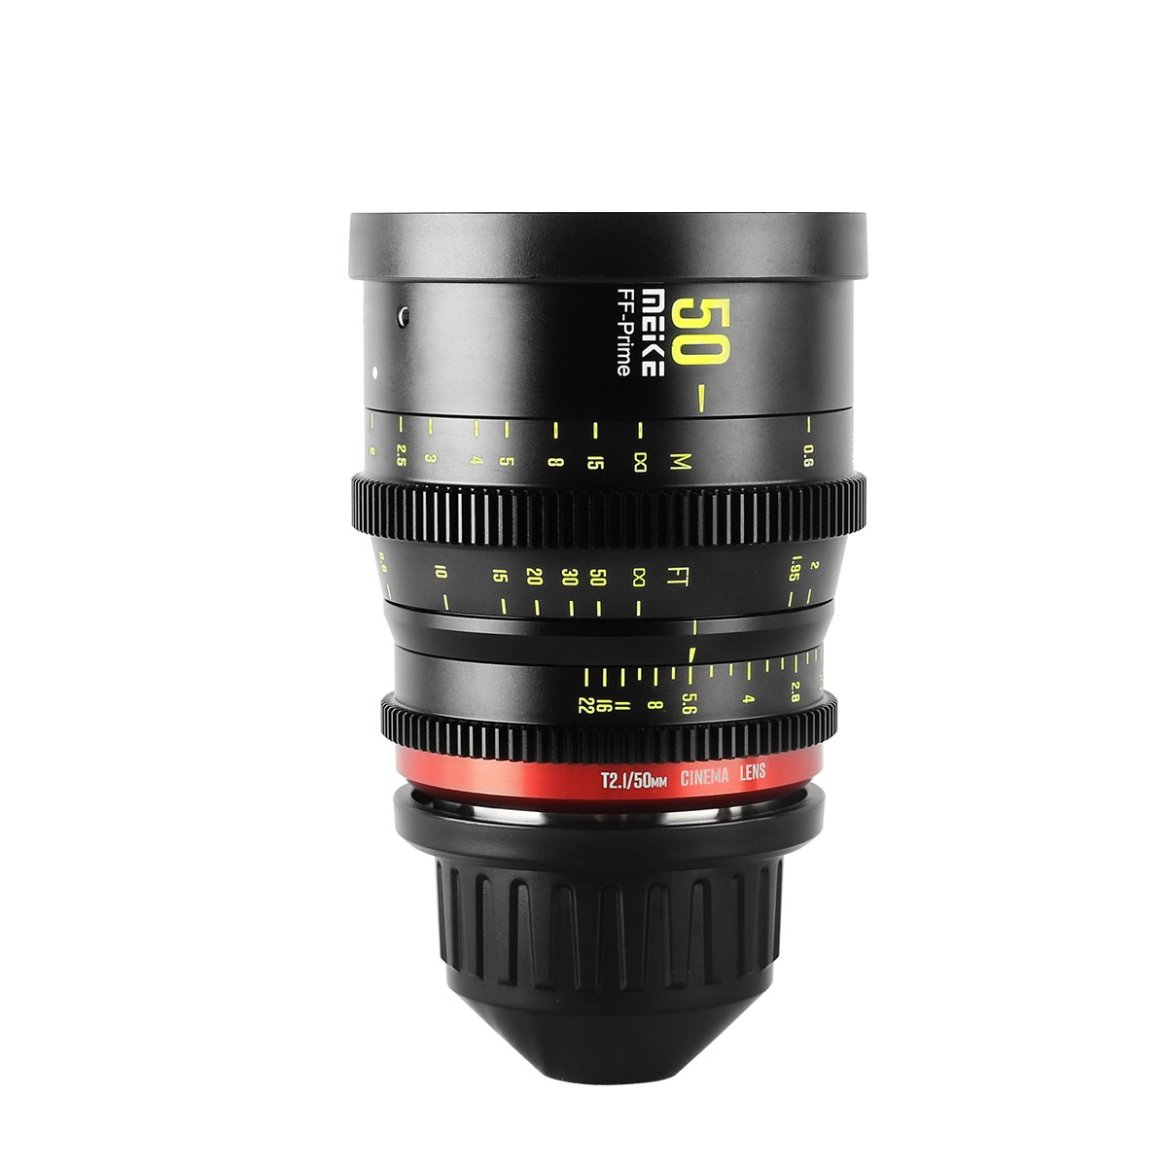 Prime 50mm T2.1 Cine Lens for Full Frame Cinema Camera